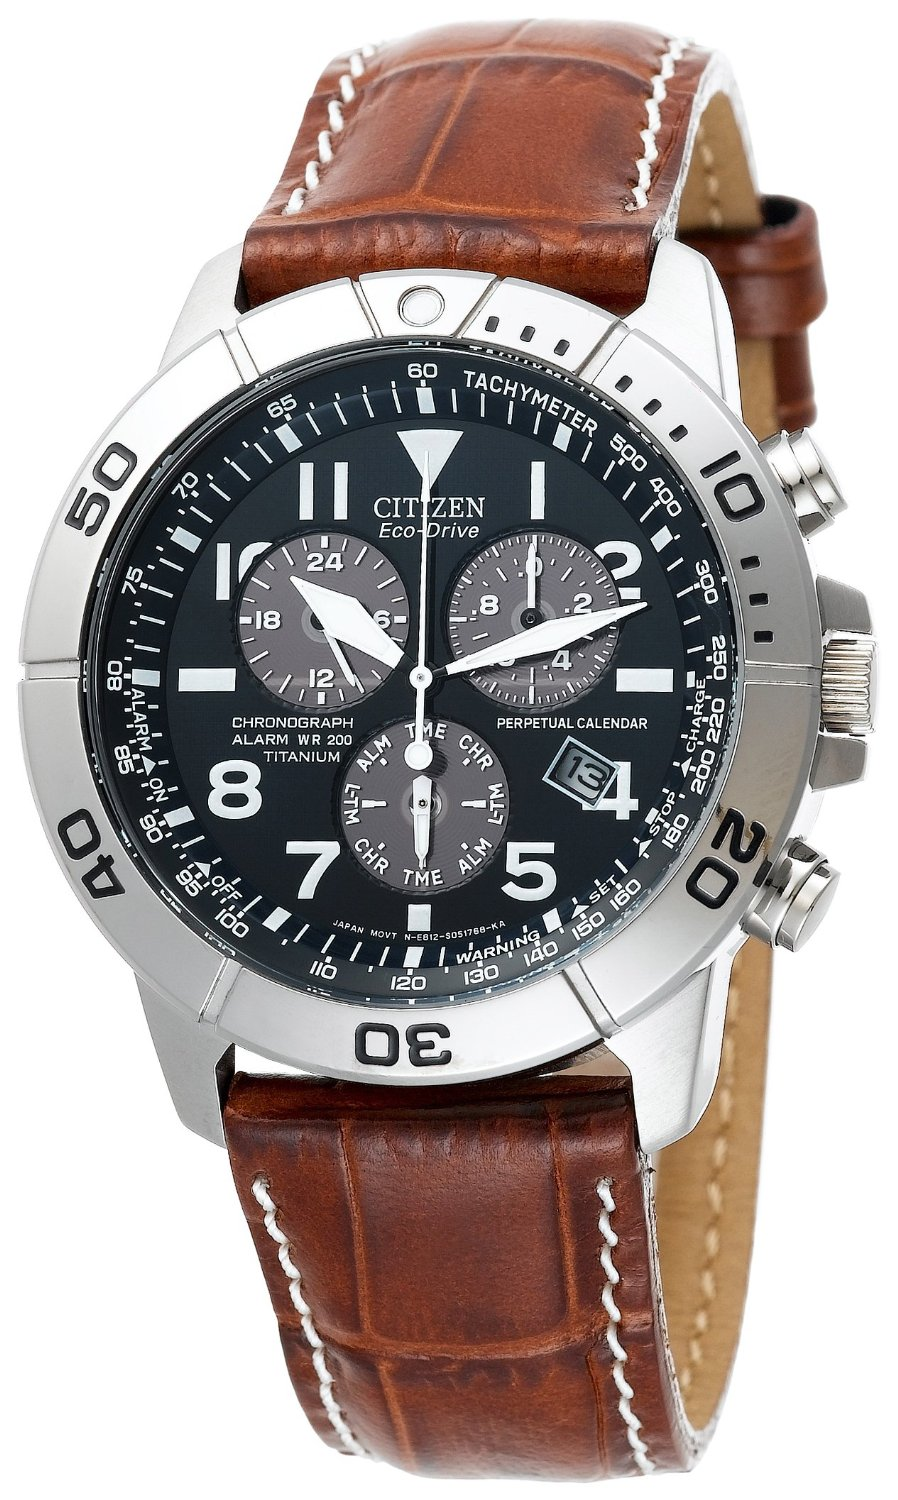 citizen eco drive perpetual calendar review